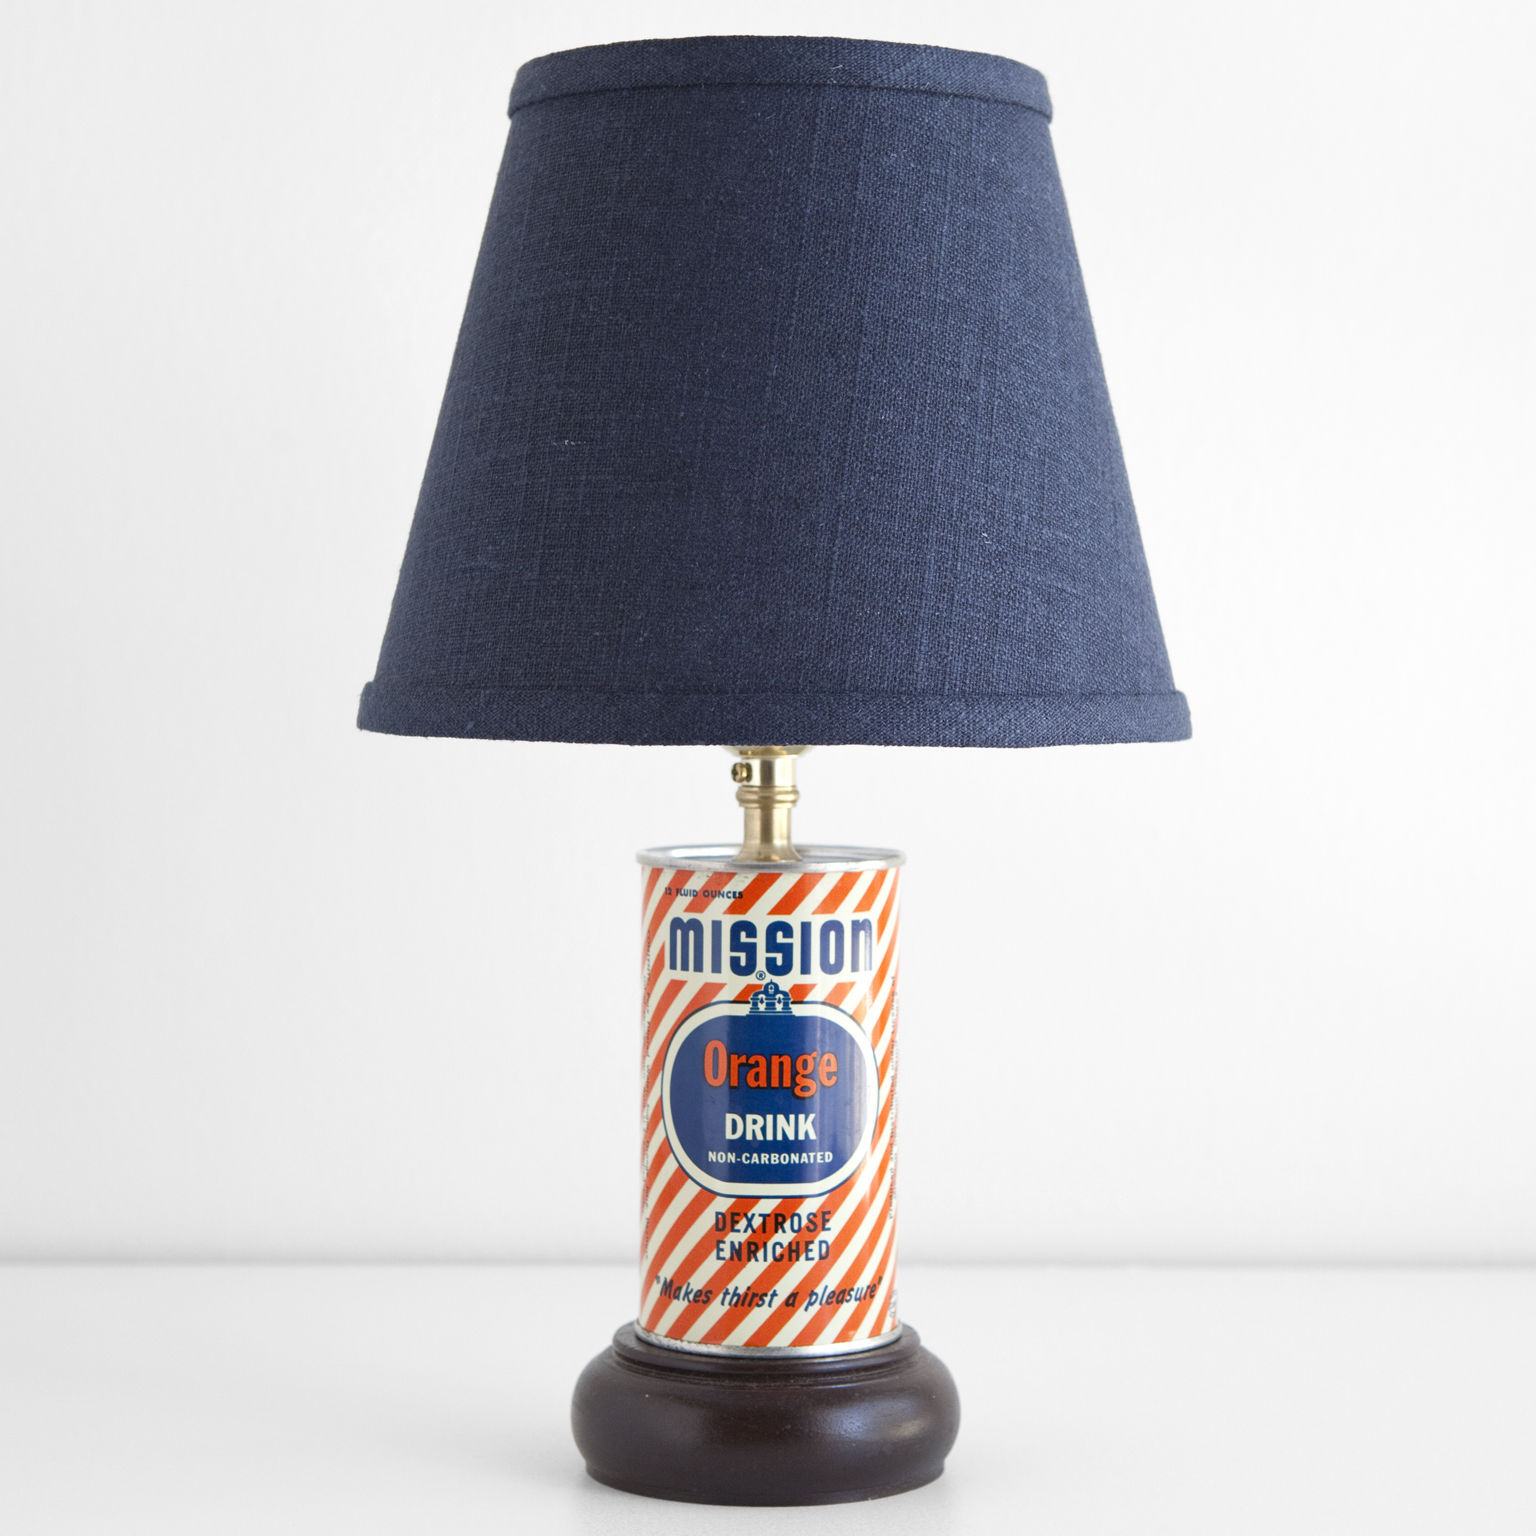 Small Vintage Mission Orange Drink Unique Accent Lamp with Blue Shade -Free Ship